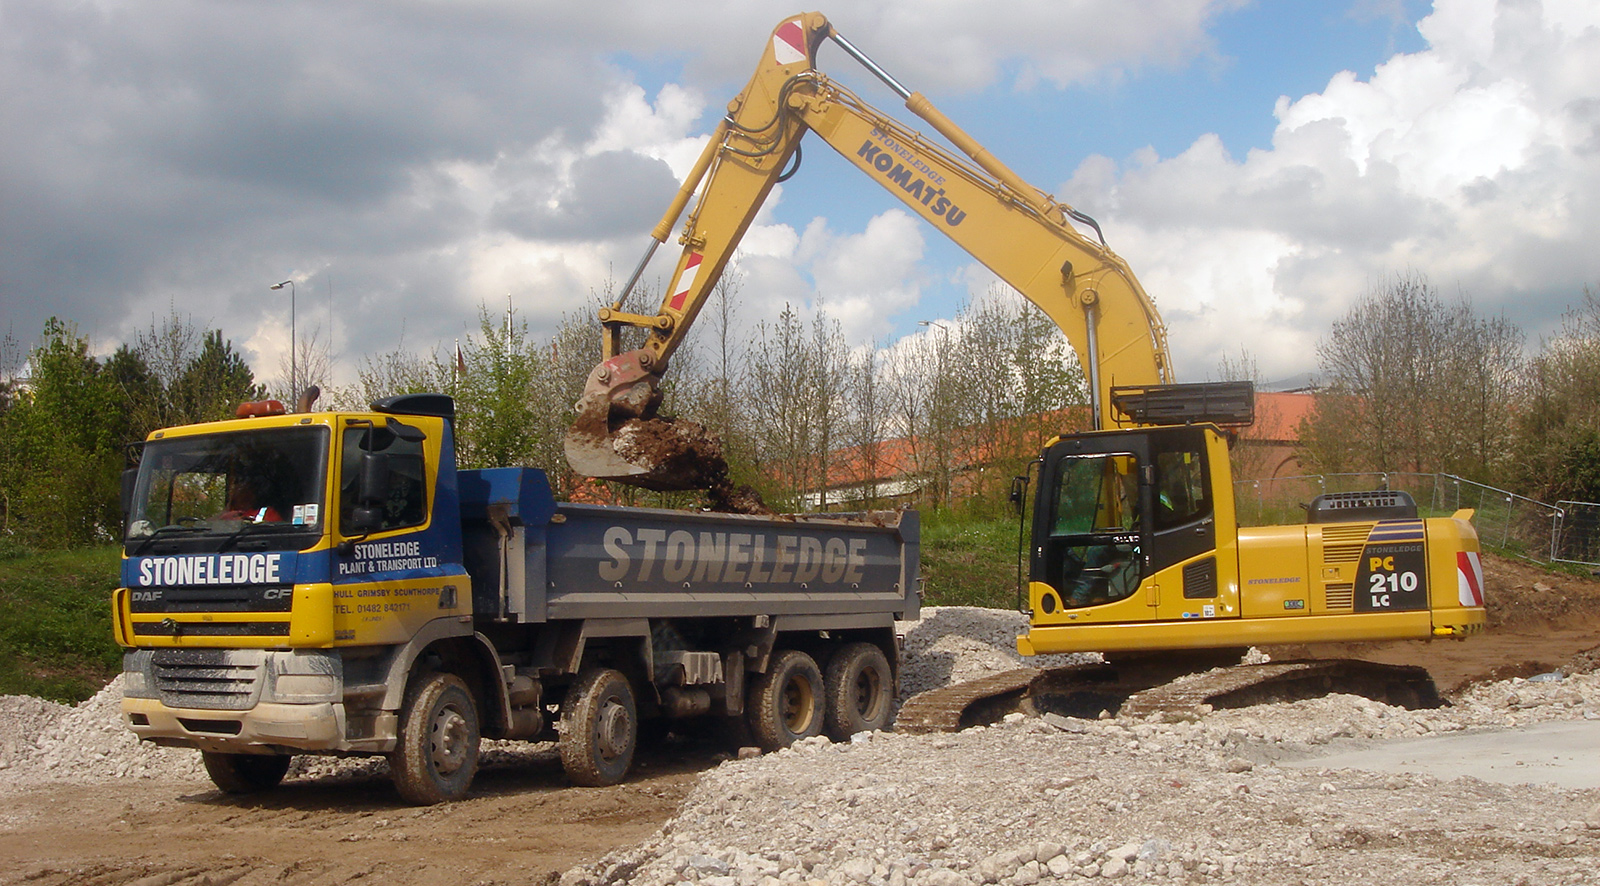 Stoneledge Plant & Transport